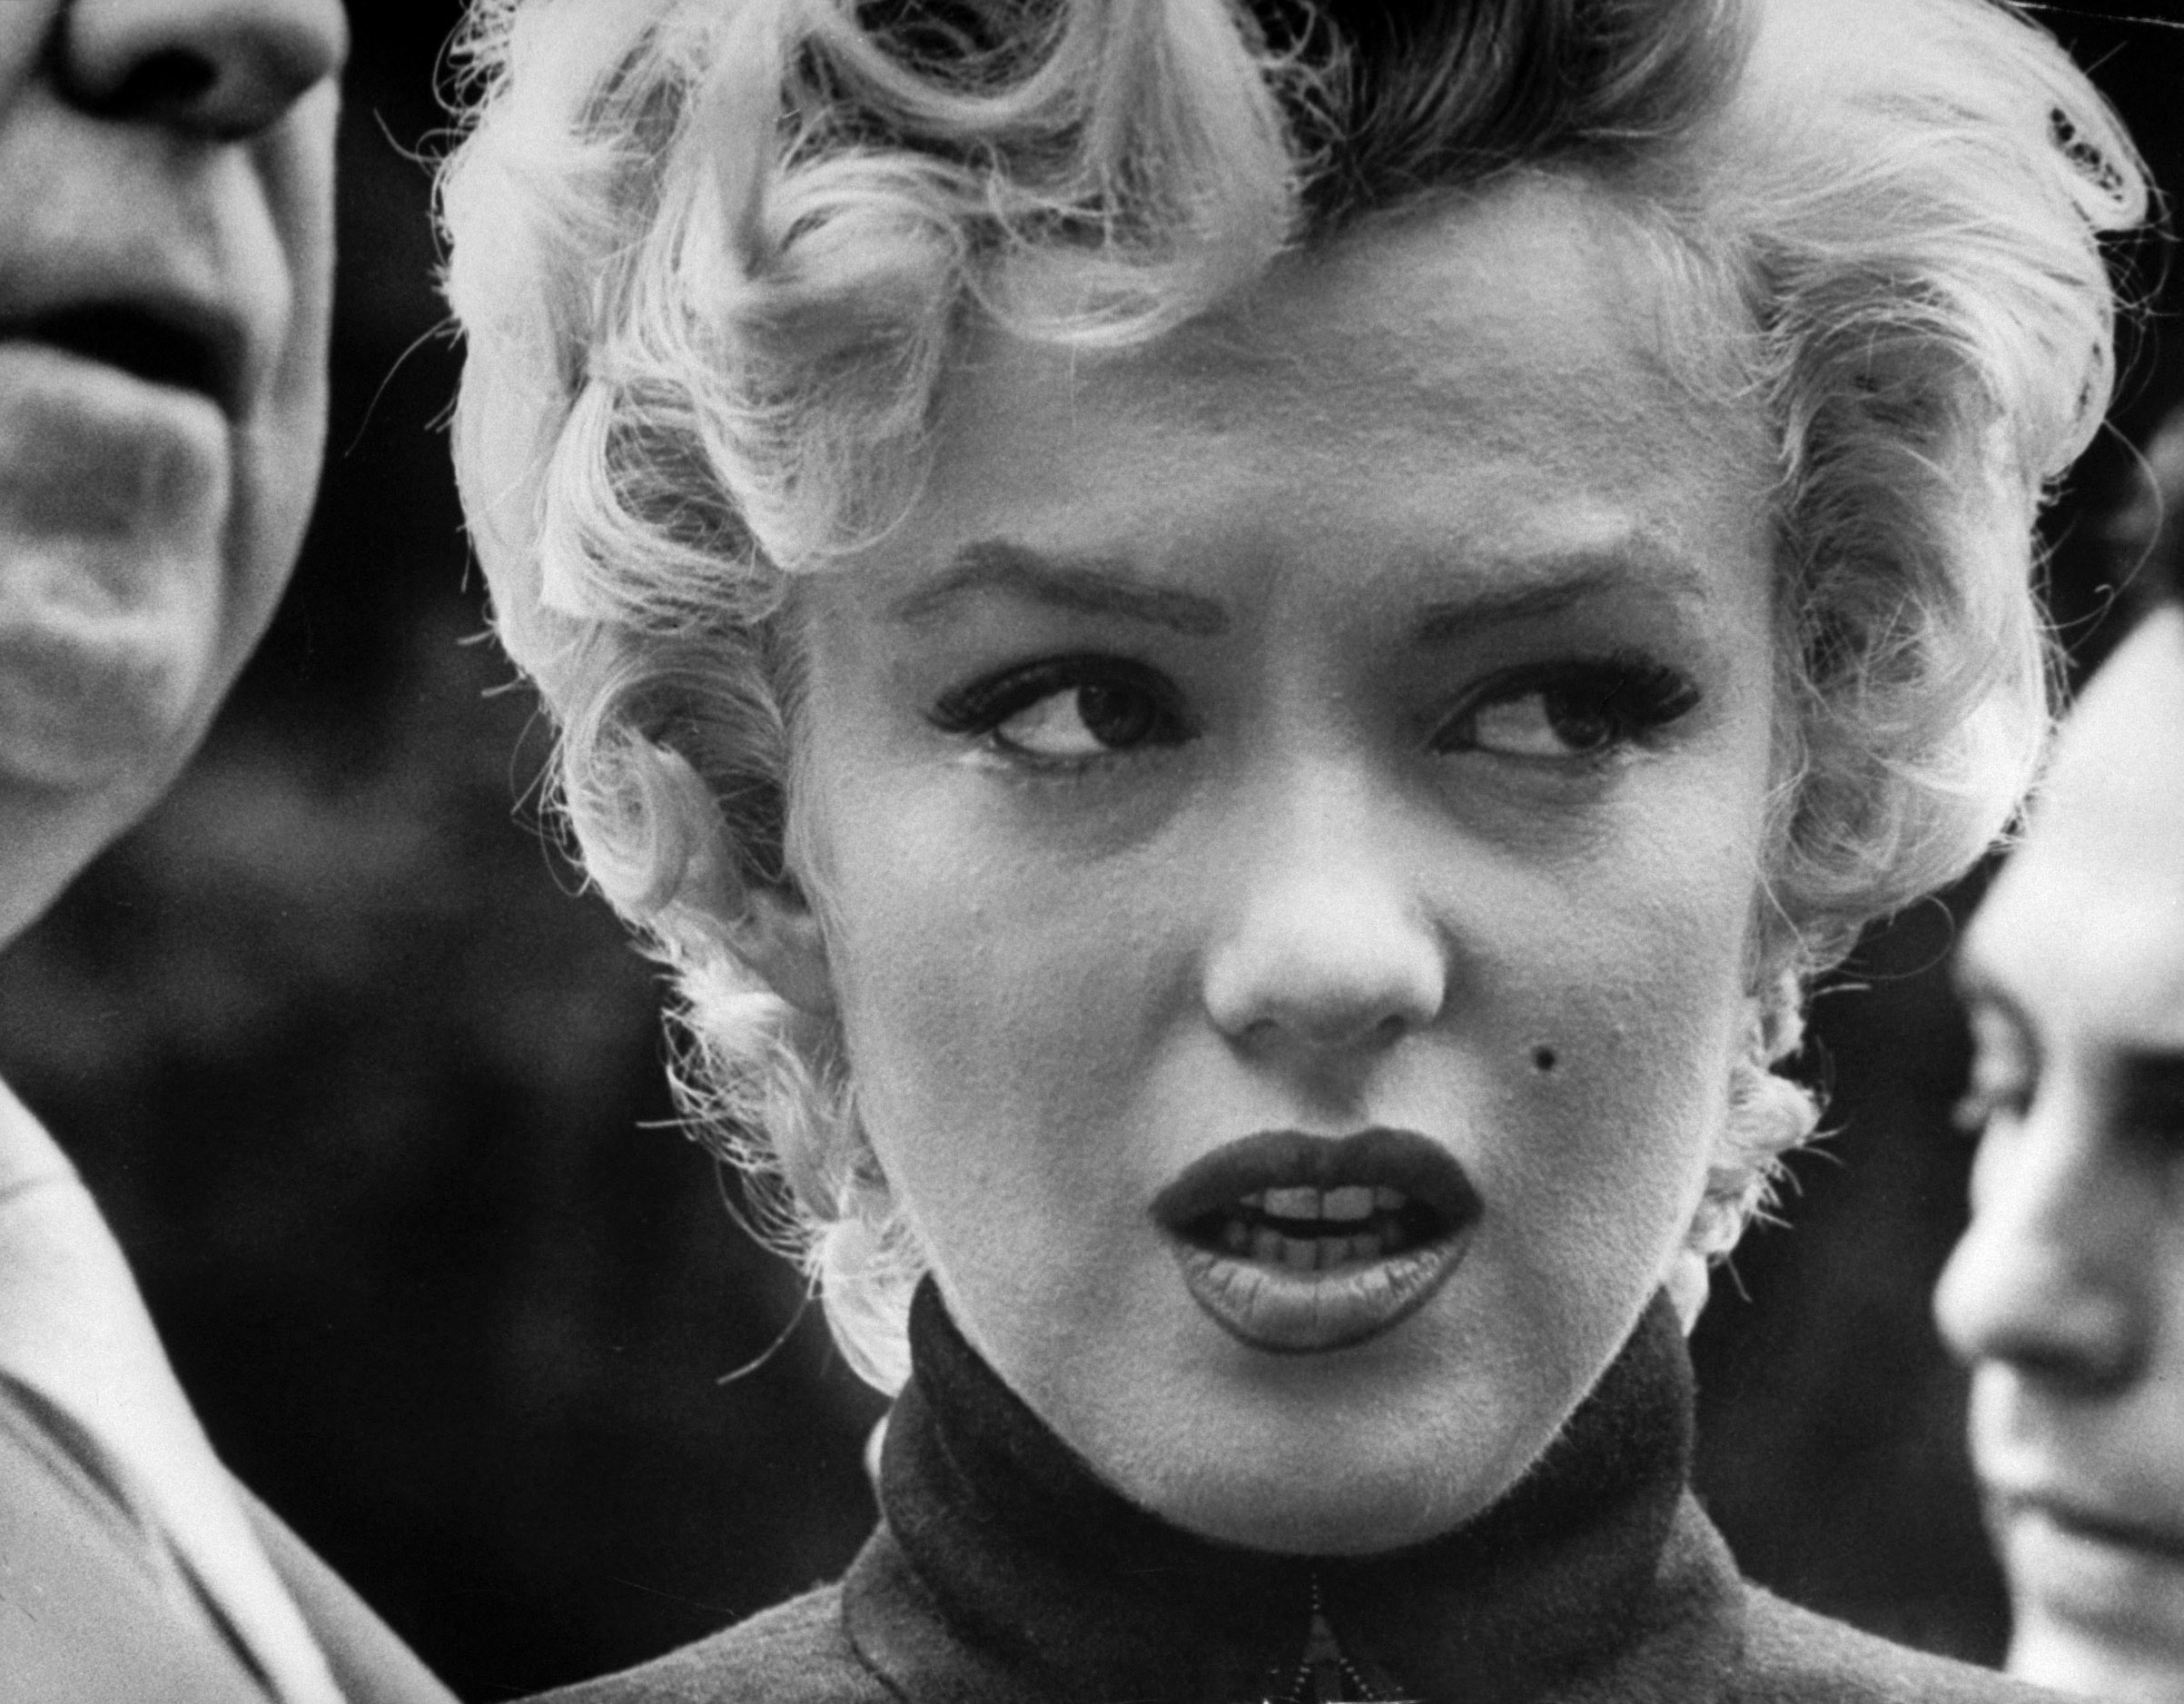 A tearful Marilyn Monroe standing outside her home to face dozens of reporters after the announcement of her divorce from Joe DiMaggio, 1954.